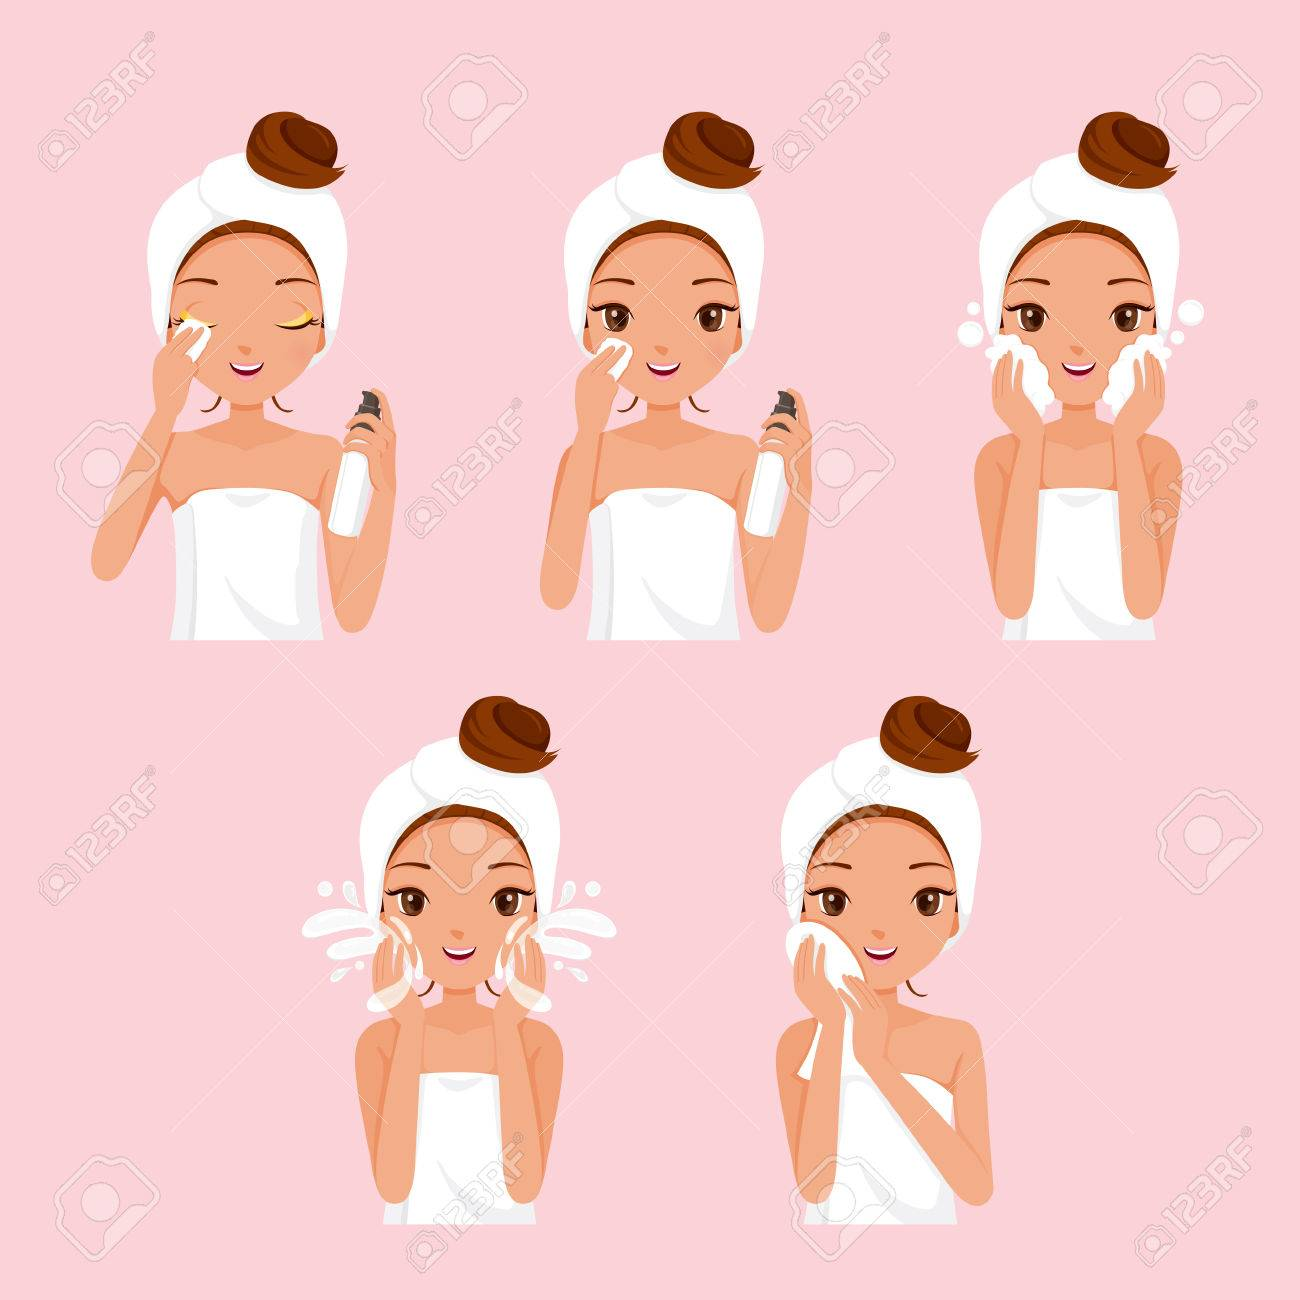 Girl Cleaning And Care Her Face With Various Actions Set, Facial, Beauty, Cosmetic, Makeup, Health, Lifestyle, Fashion - 54561074